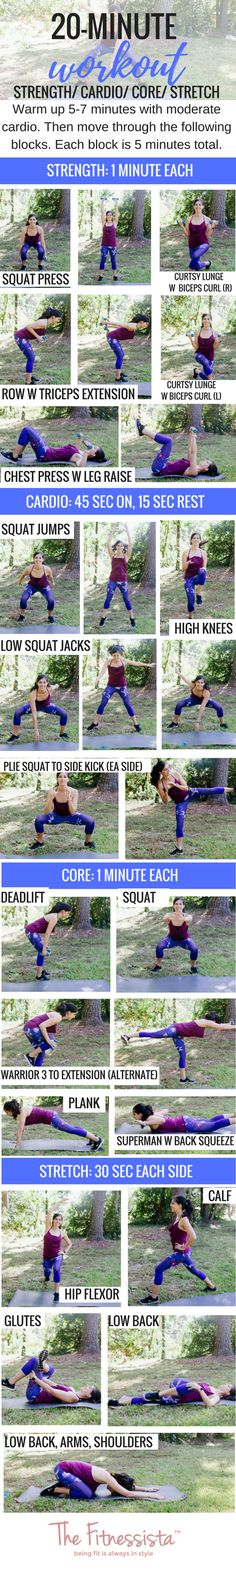 20 minute workout you can do anywhere! Get cardio, strength, core and stretching in 20 minutes with a pair of dumbbells. fitnessista.com